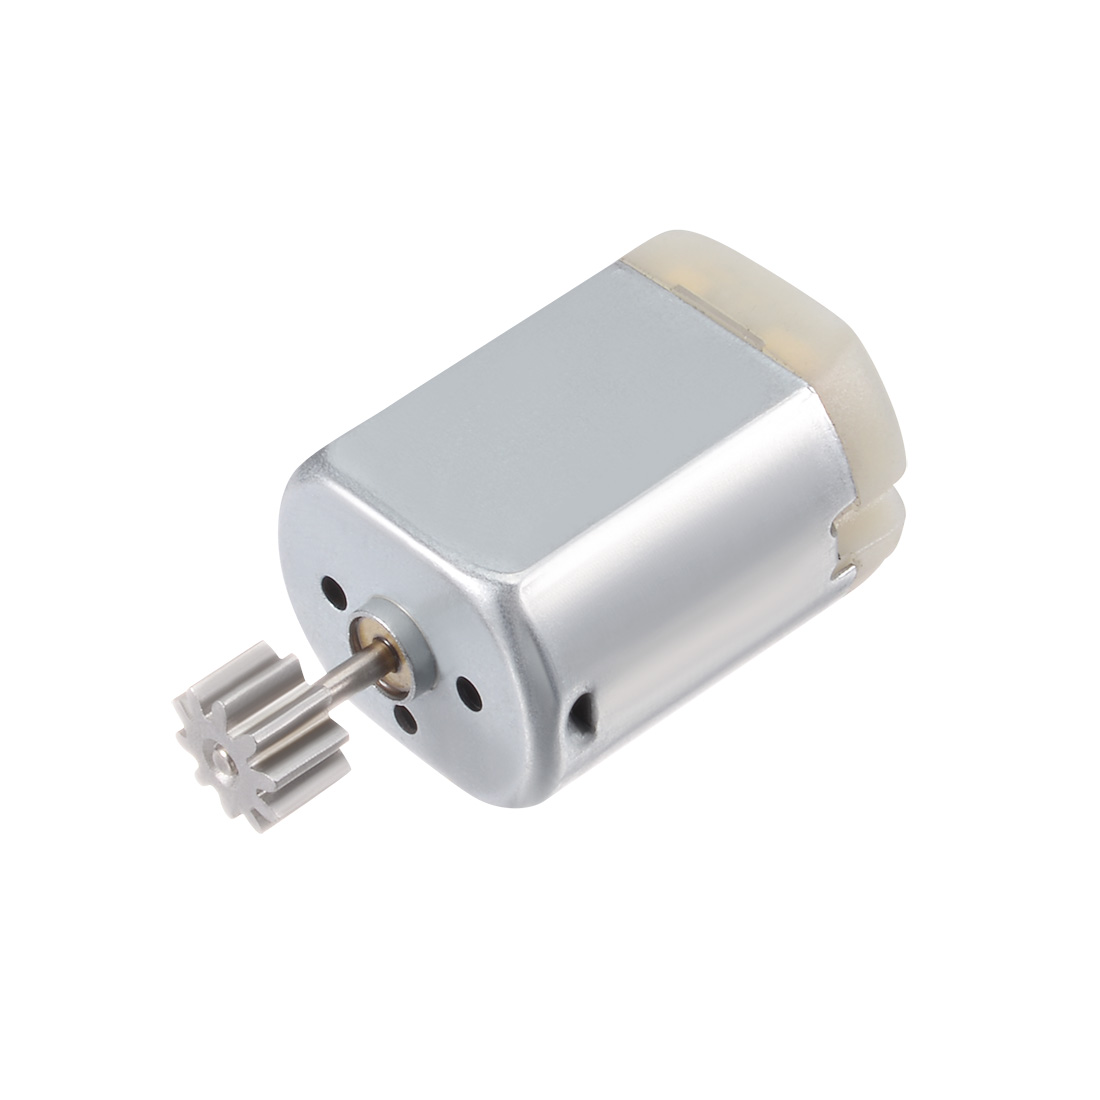 Micro Motor DC 12V 12500RPM 10 Teeth High Speed Motor for DIY Toy Models